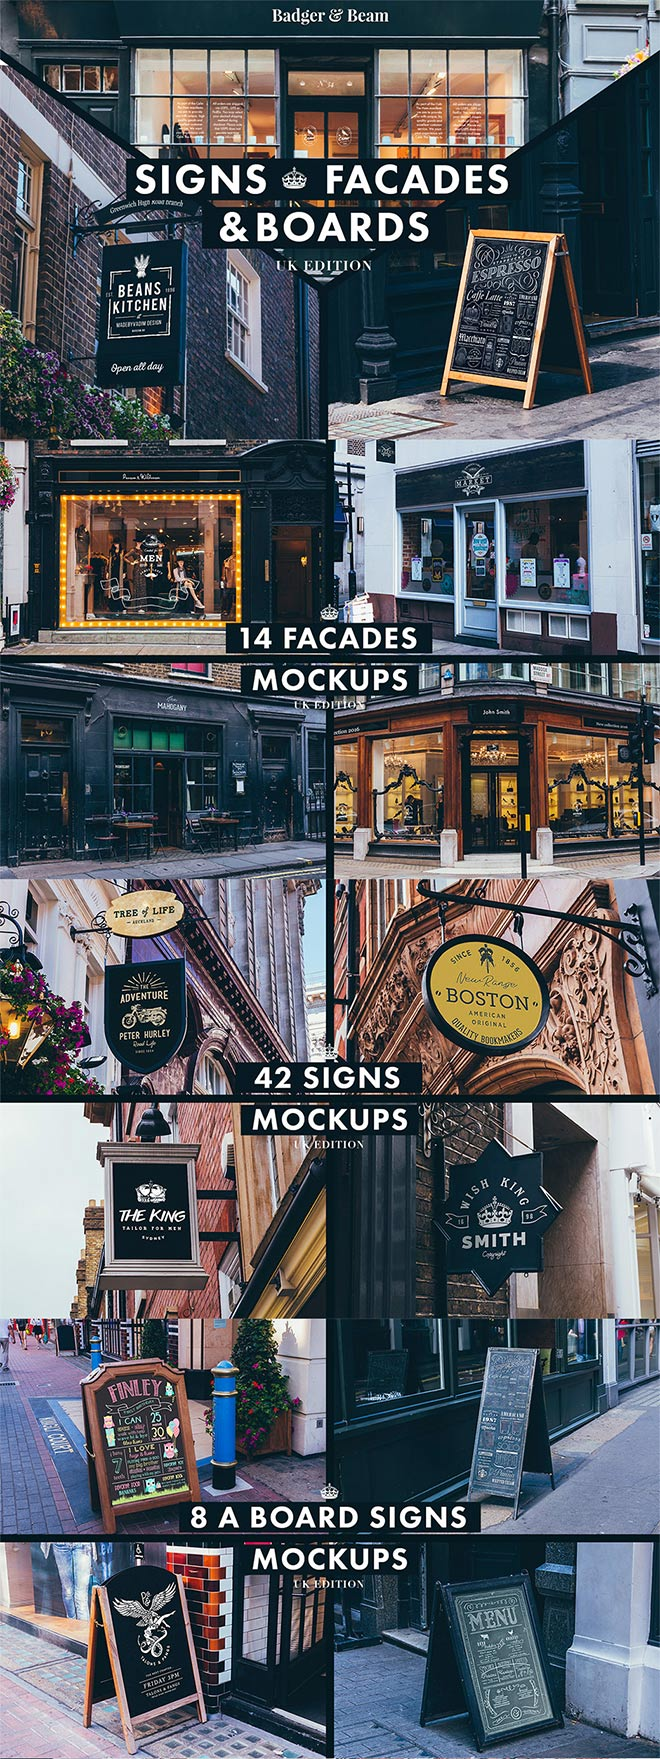 Signs and Facades Mockups